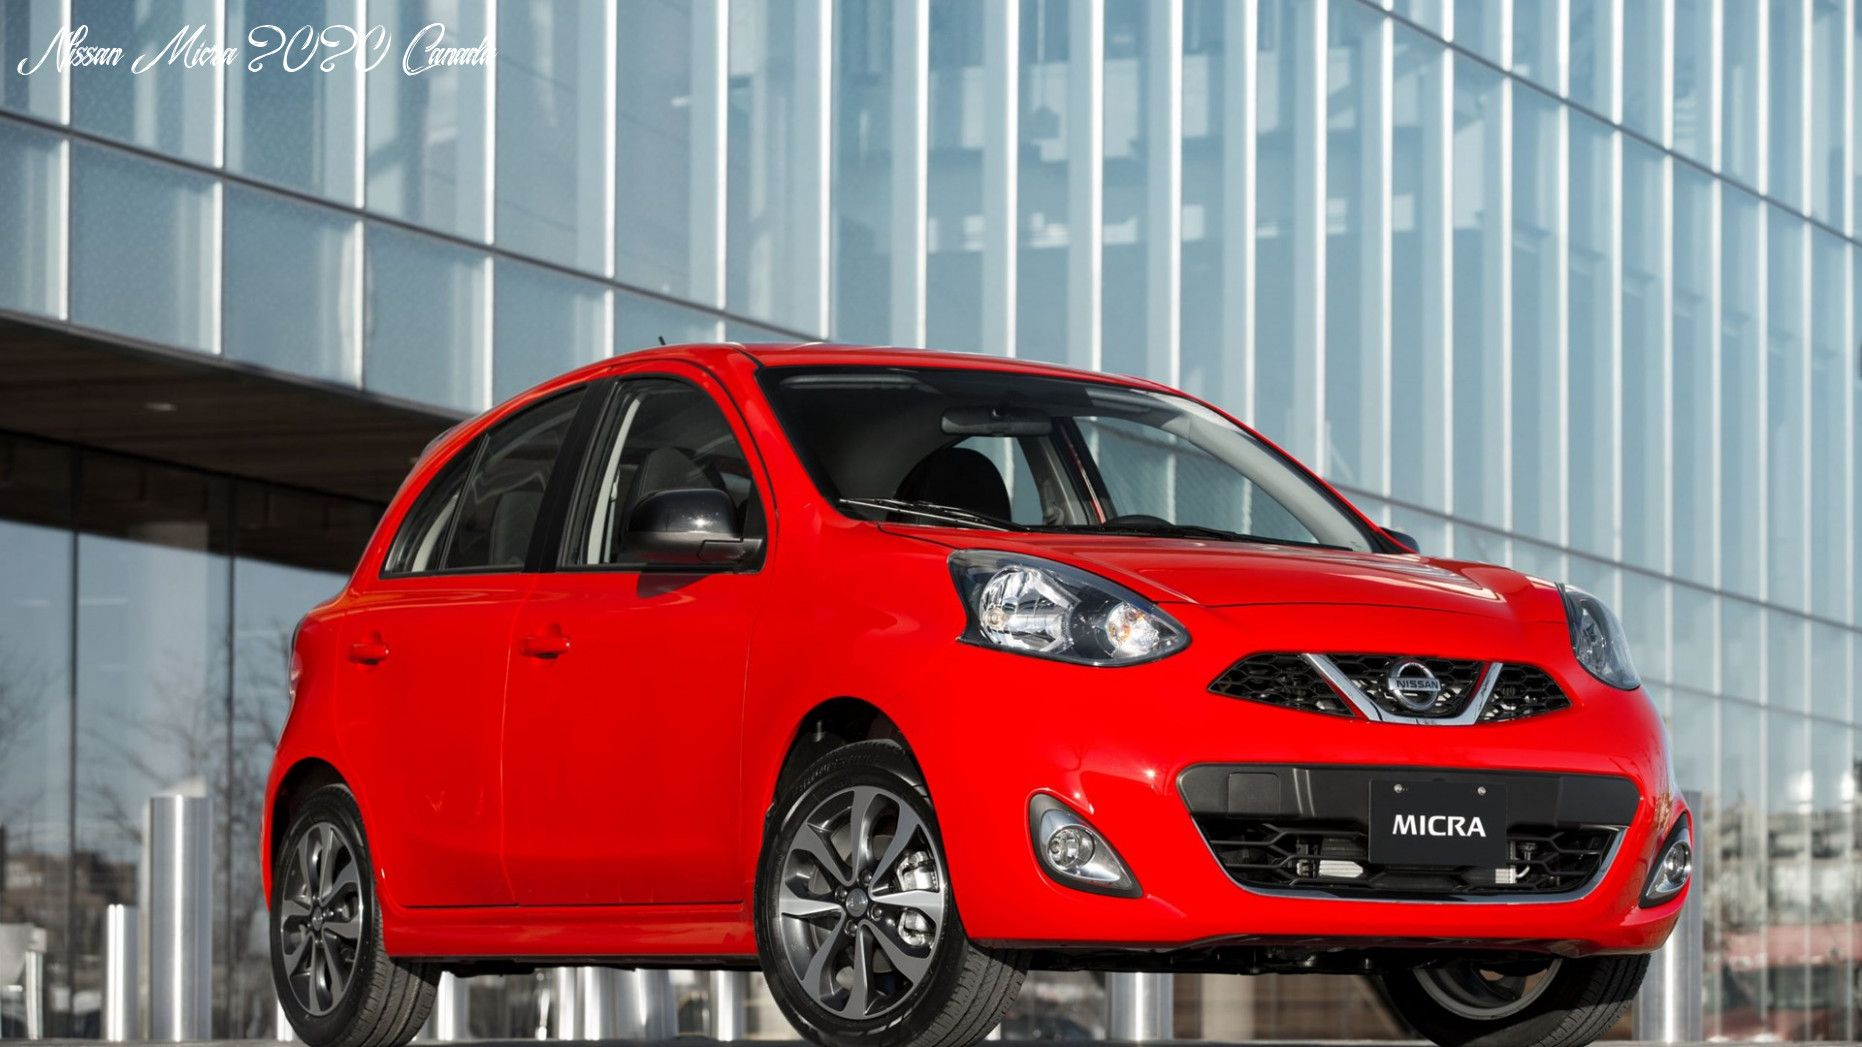 Nissan Micra 2020 Canada Specs And Review In 2020 Nissan Datsun Mitsubishi Mirage